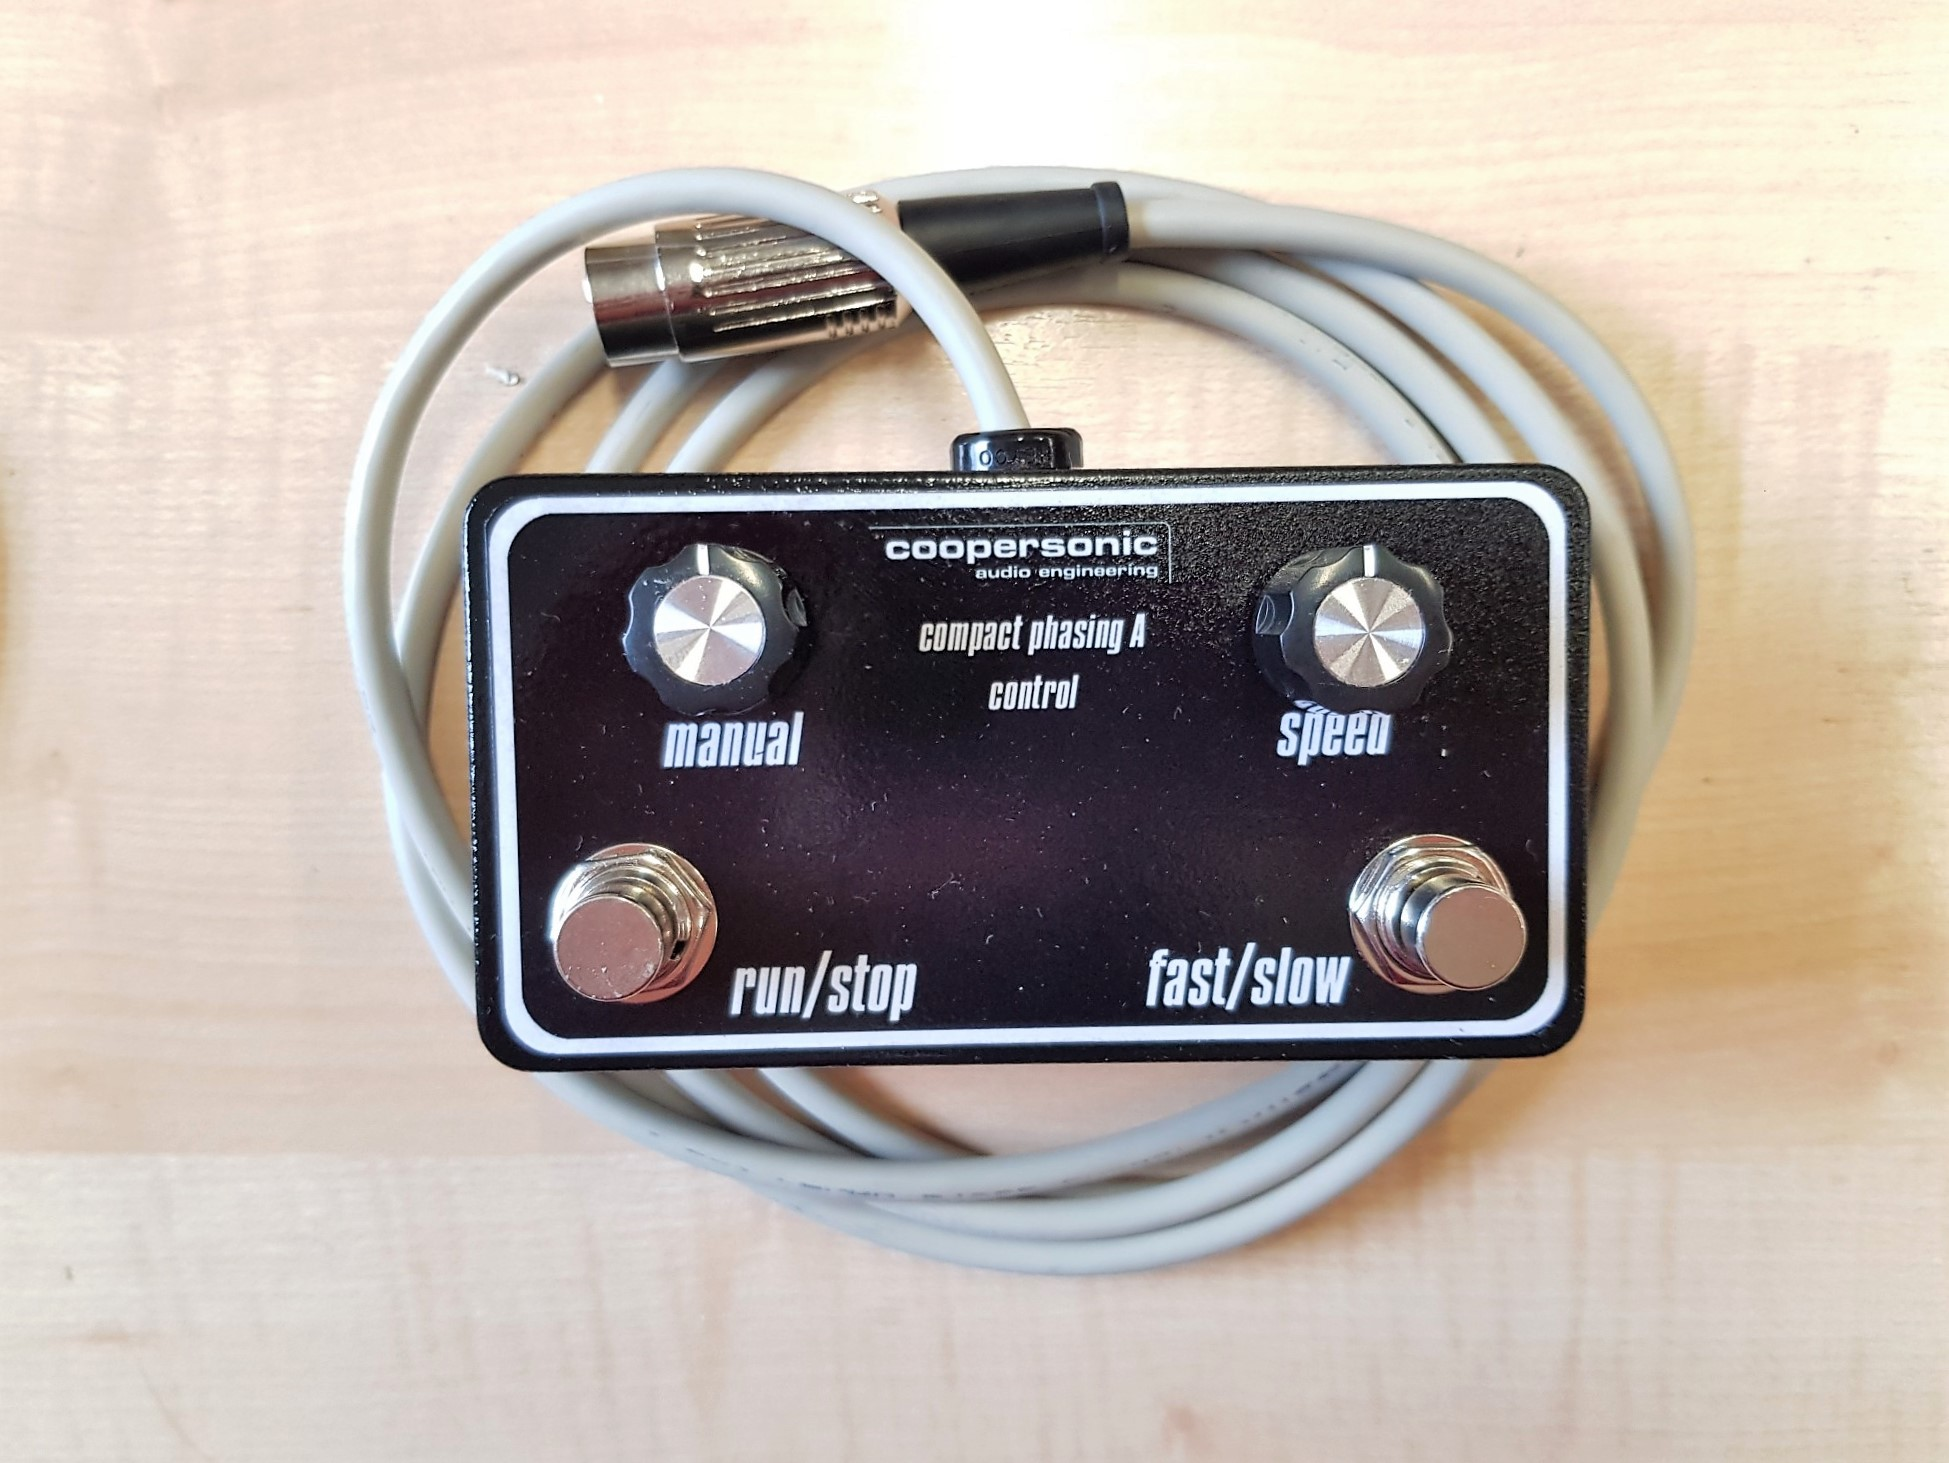 Schulte Compact Phasing – Custom Control Pedal